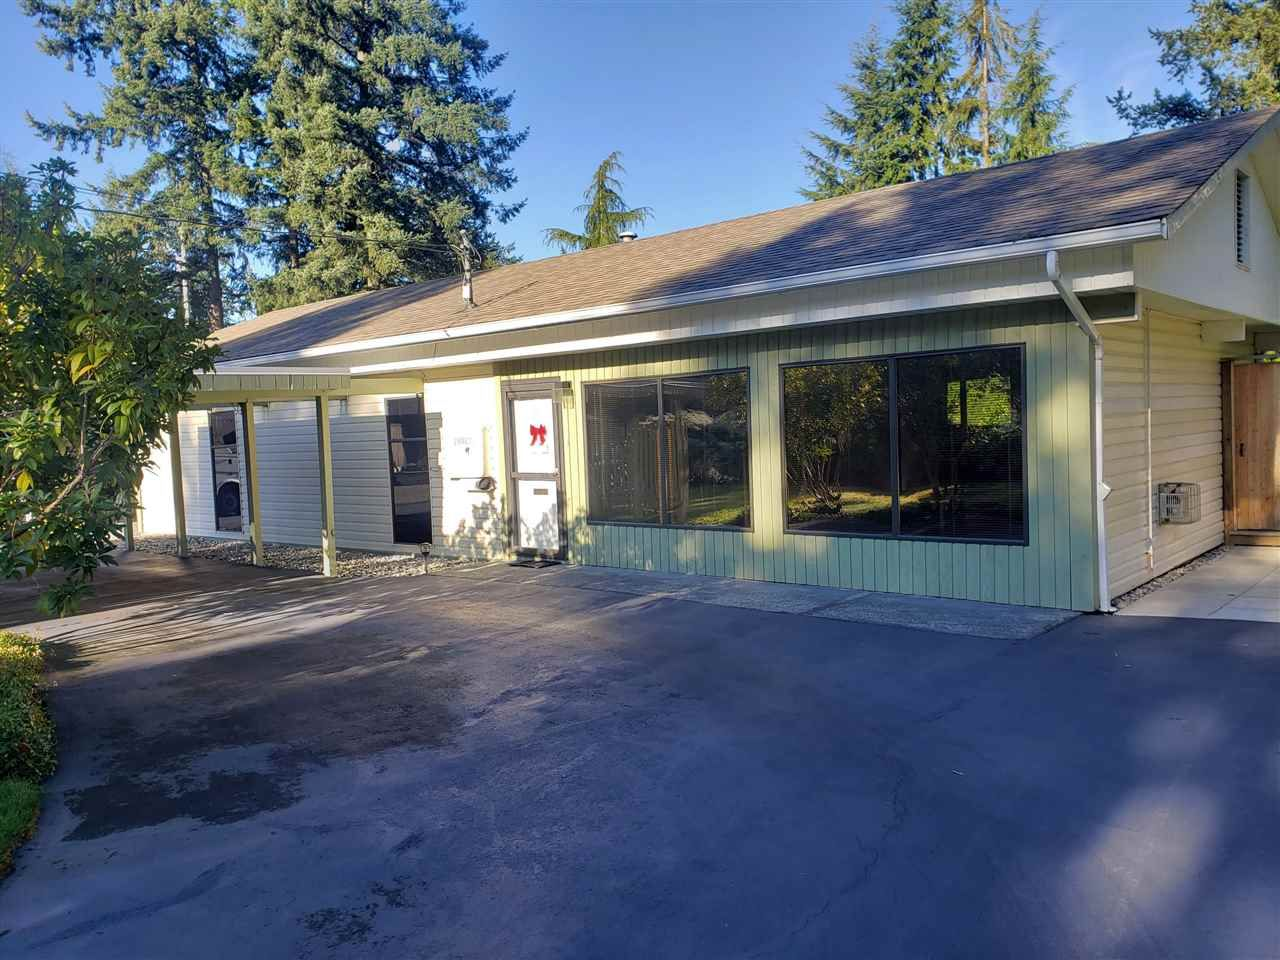 """Main Photo: 20023 36A Avenue in Langley: Brookswood Langley House for sale in """"Brookswood"""" : MLS®# R2420485"""